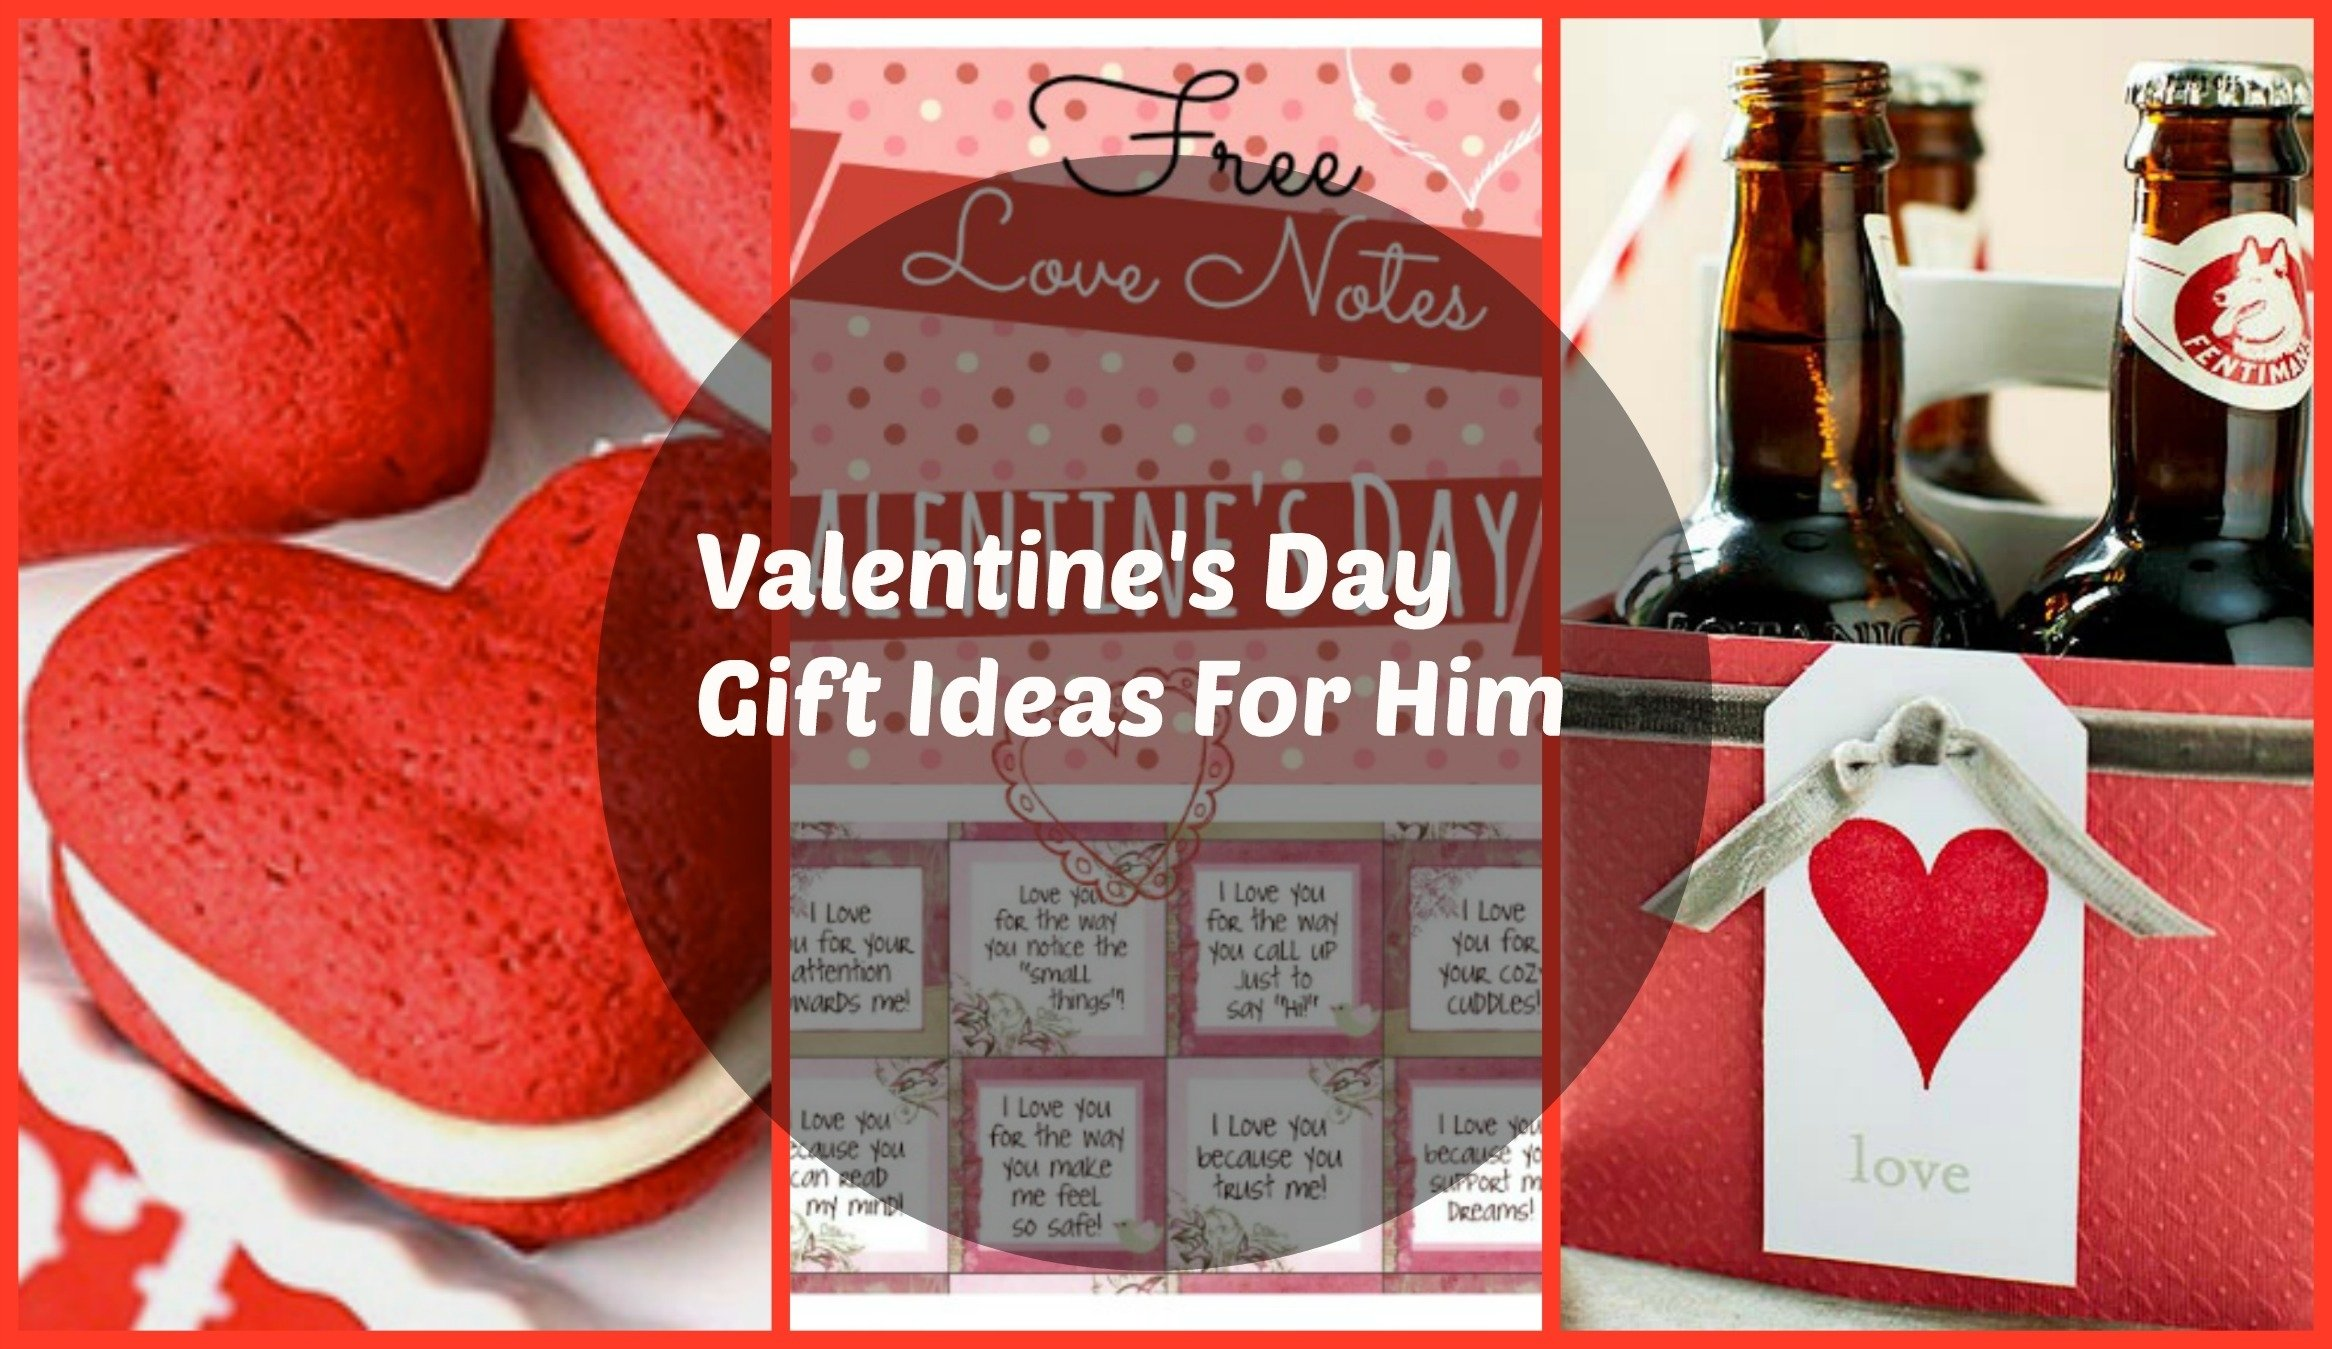 10 Cute V Day Gift Ideas For Him 2014 valentines day gift ideas for him 2020